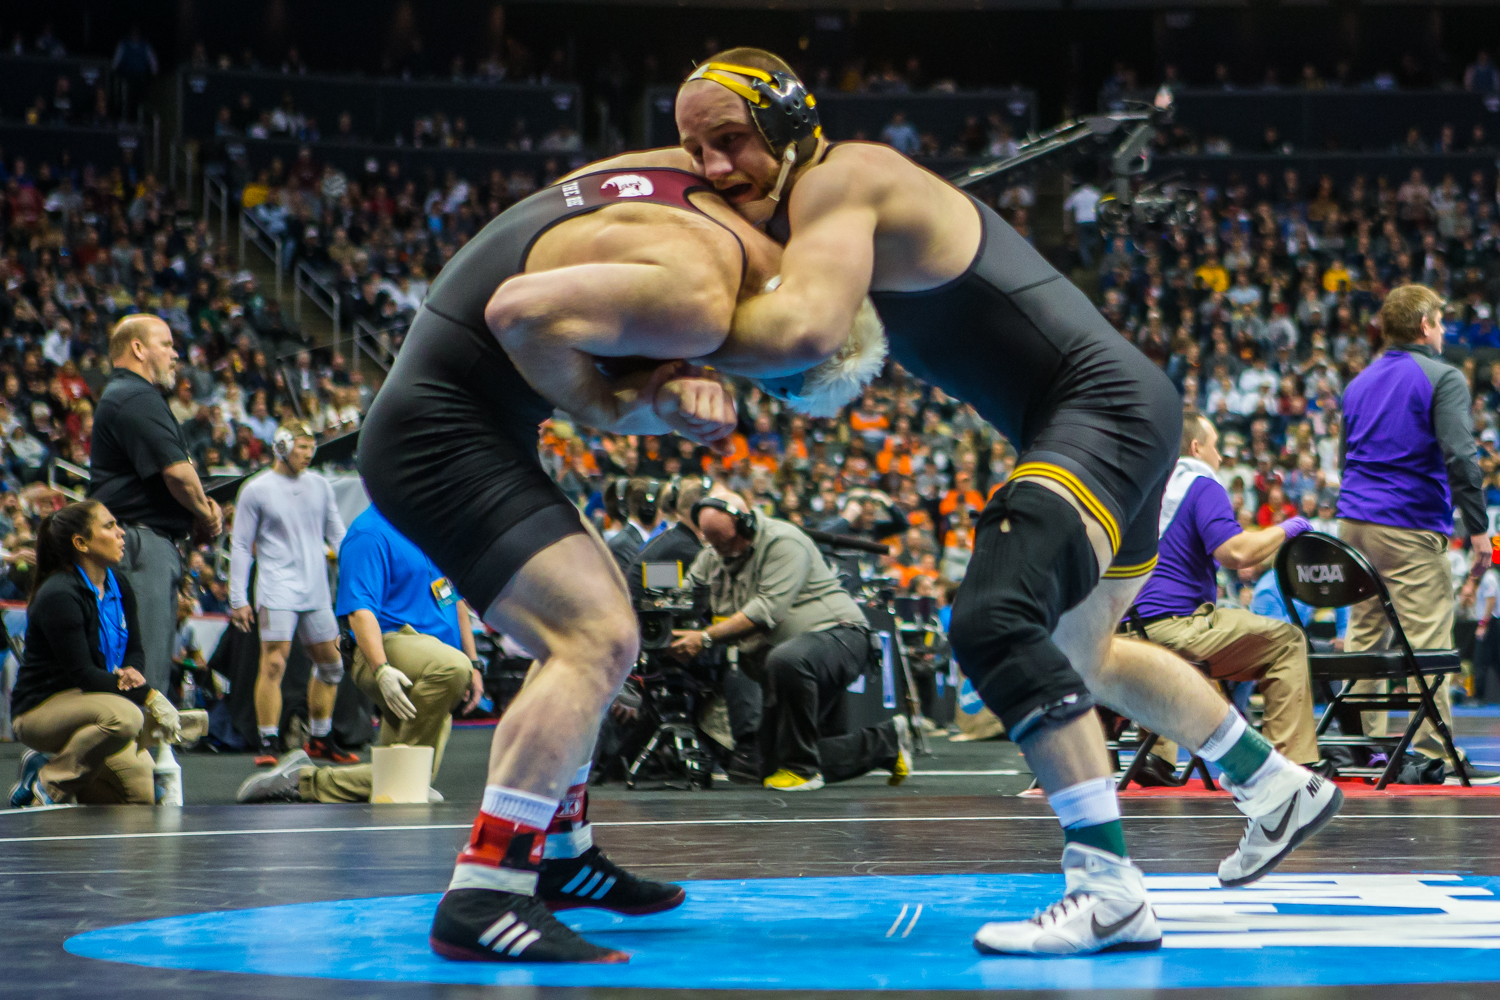 Iowa%E2%80%99s+165-pound+Alex+Marinelli+wrestles+Lock+Haven%E2%80%99s+Chance+Marstellar+during+the+fourth+session+of+the+2019+NCAA+D1+Wrestling+Championships+at+PPG+Paints+Arena+in+Pittsburgh%2C+PA+on+Friday%2C+March+22%2C+2019.+Marstellar+won+by+decision%2C+9-6.